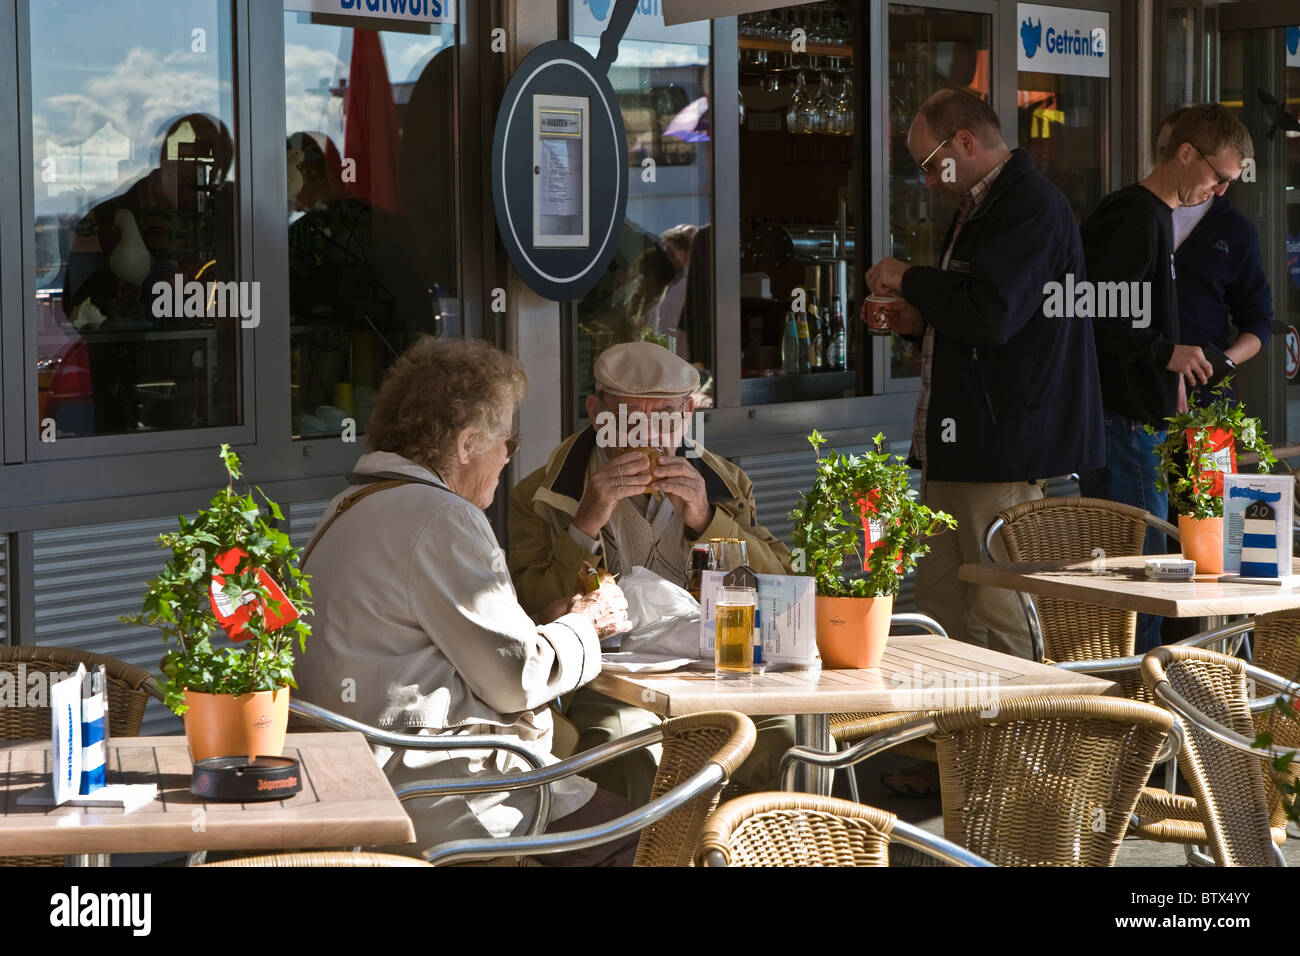 seafood house mobile al with Stock Photo Elderly Couple Dining At Outdoor Restaurant Patio Hamburg Port 32536783 on Masterbilt Dd88 Ice Cream Dipping Cabi  225 Cu Ft Freezer 1500 26556945 as well Maps further papasplacedaphne furthermore Trending G30472 T0 Dauphin Island Alabama in addition Spanish Fort Al.